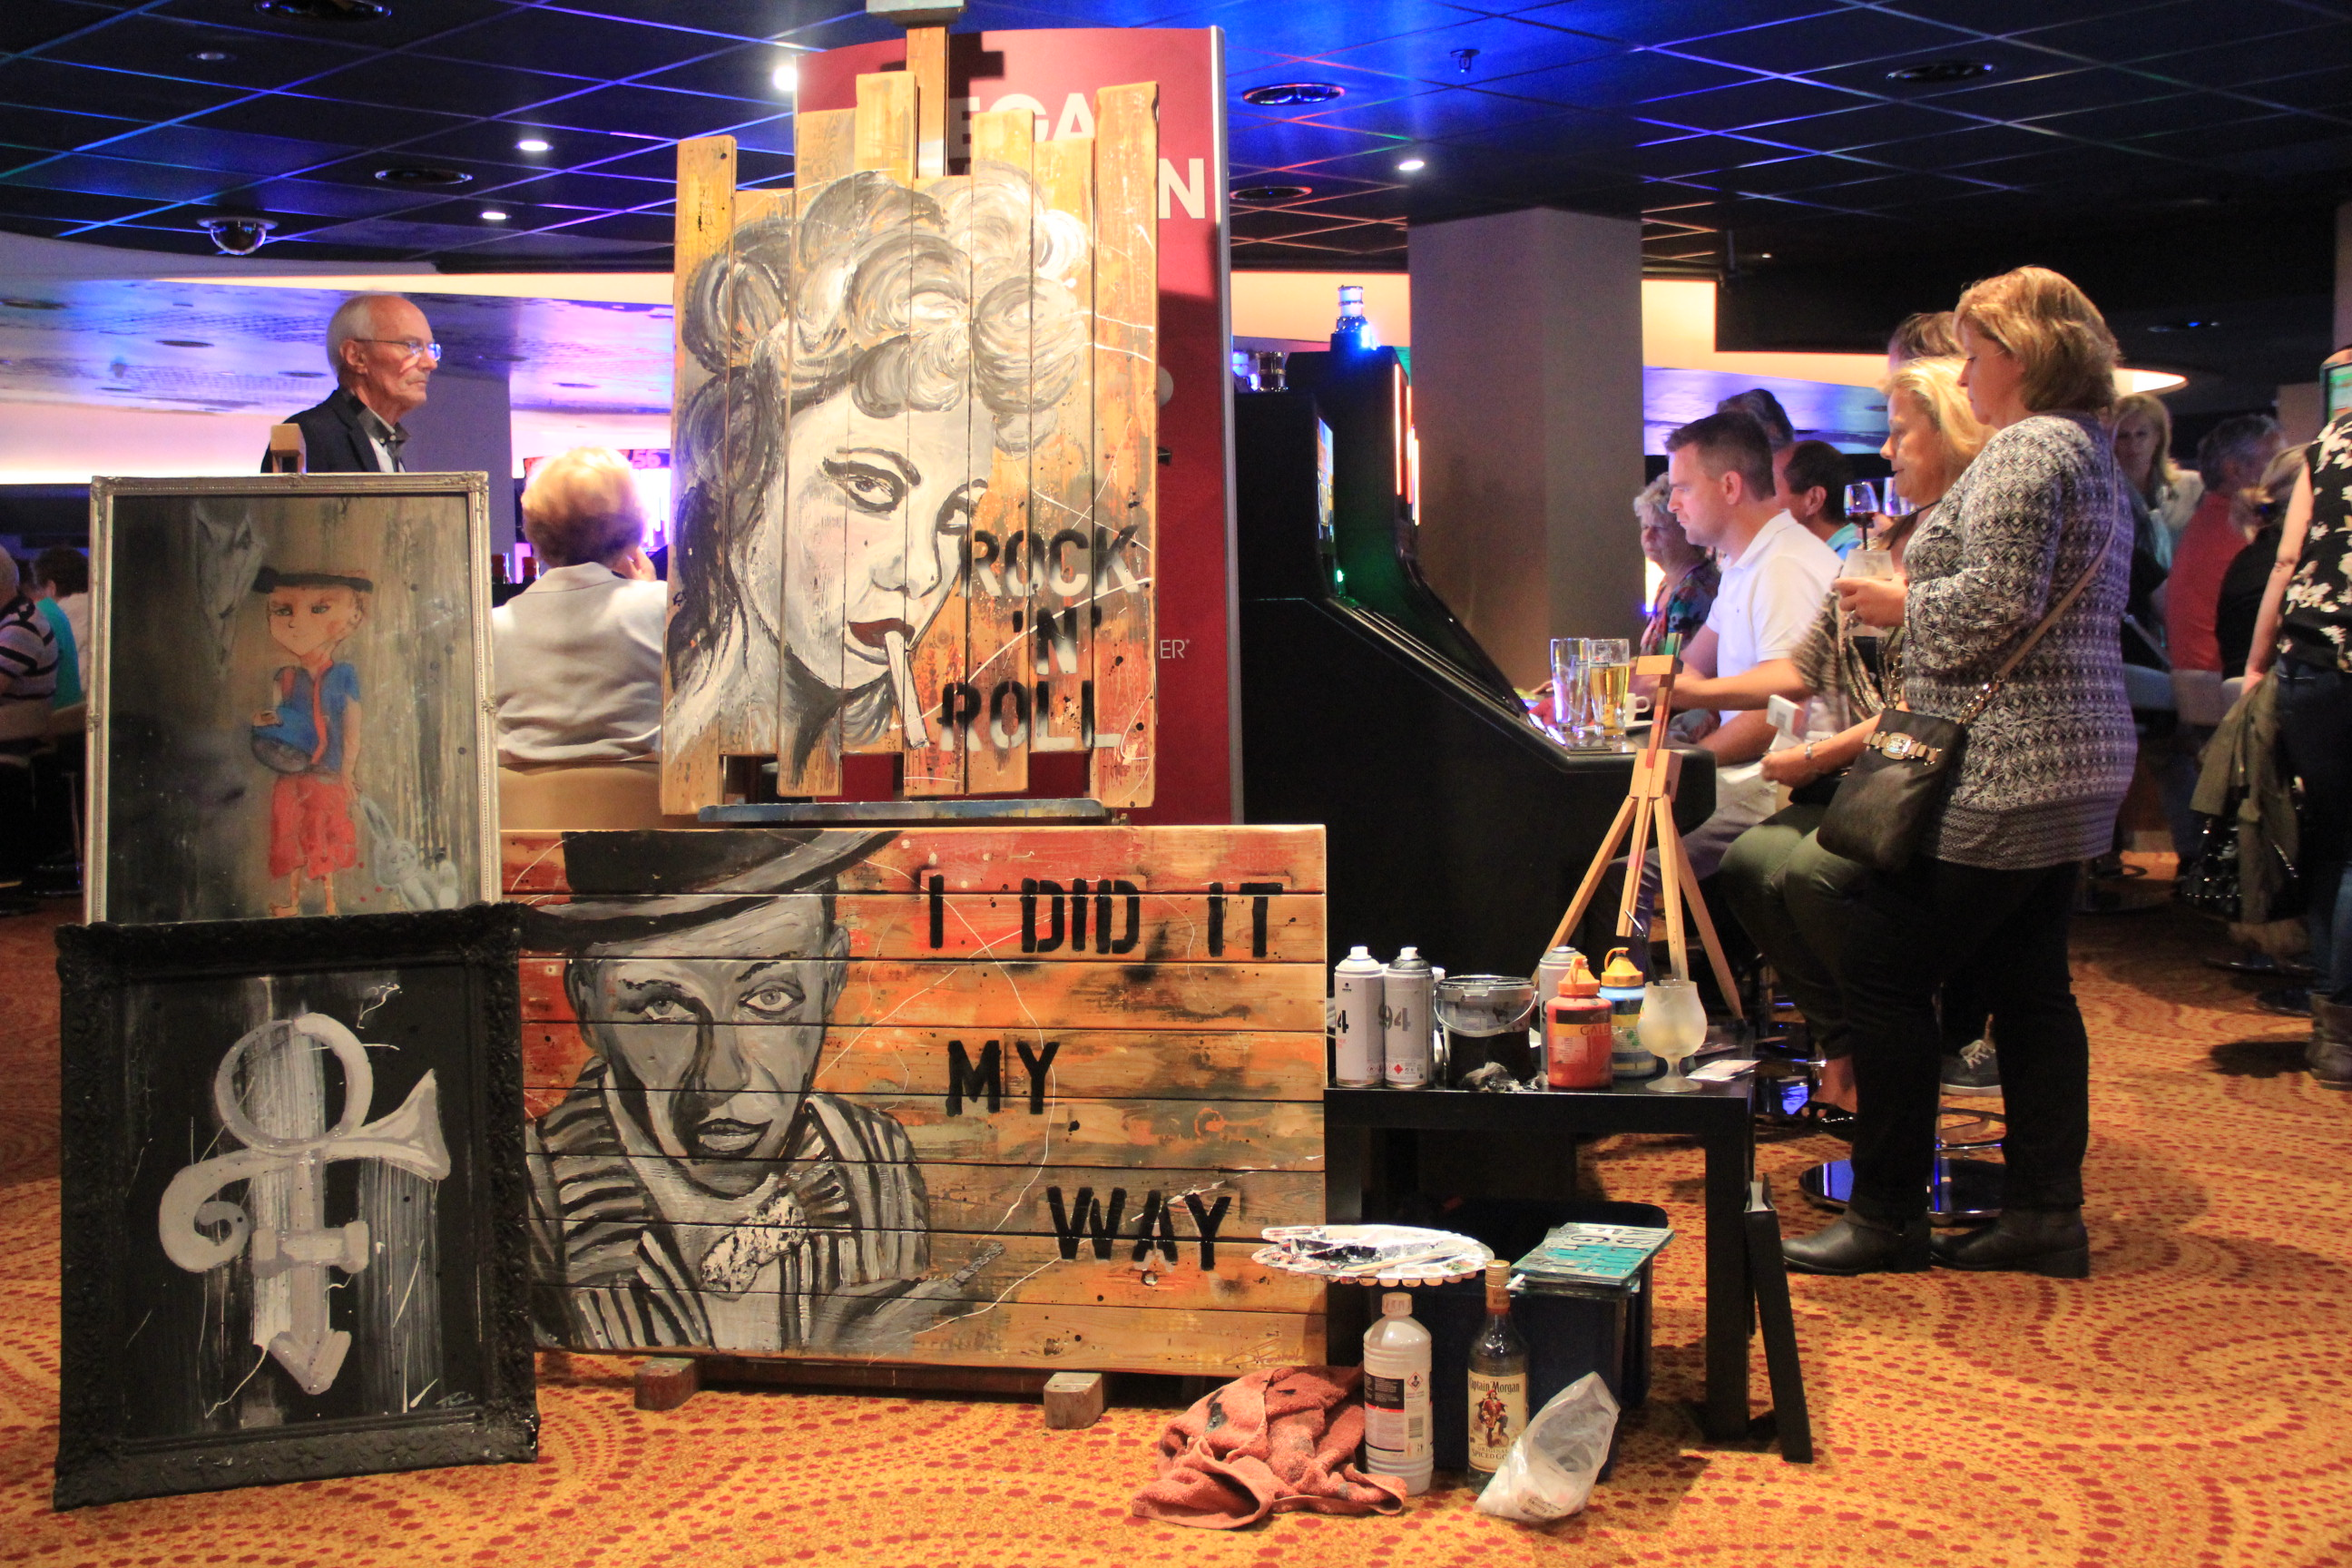 Holland Casino Eindhoven | Live painting